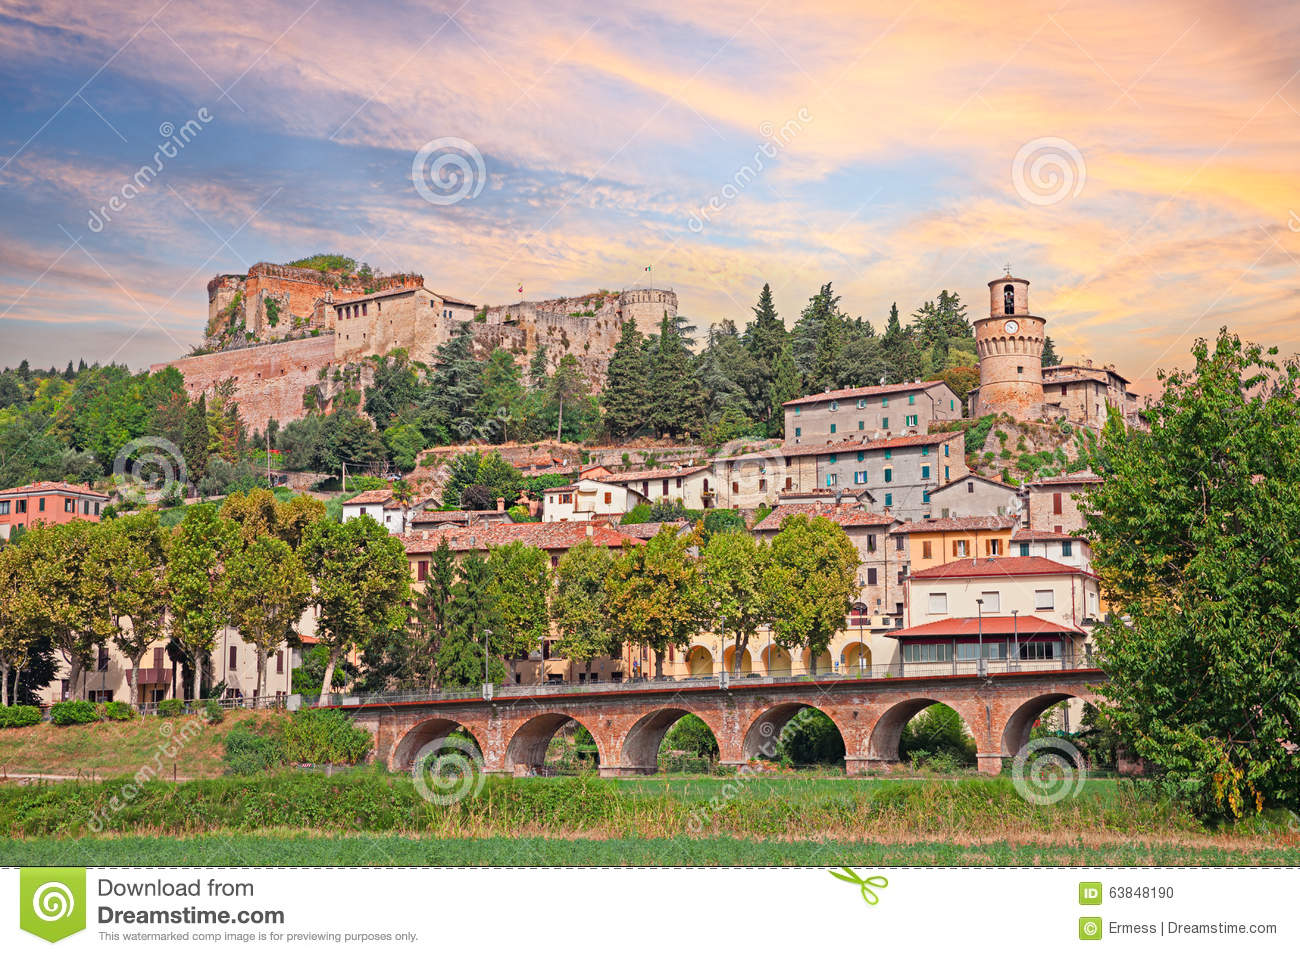 Cityscape of the spa town Castrocaro Terme, Italy